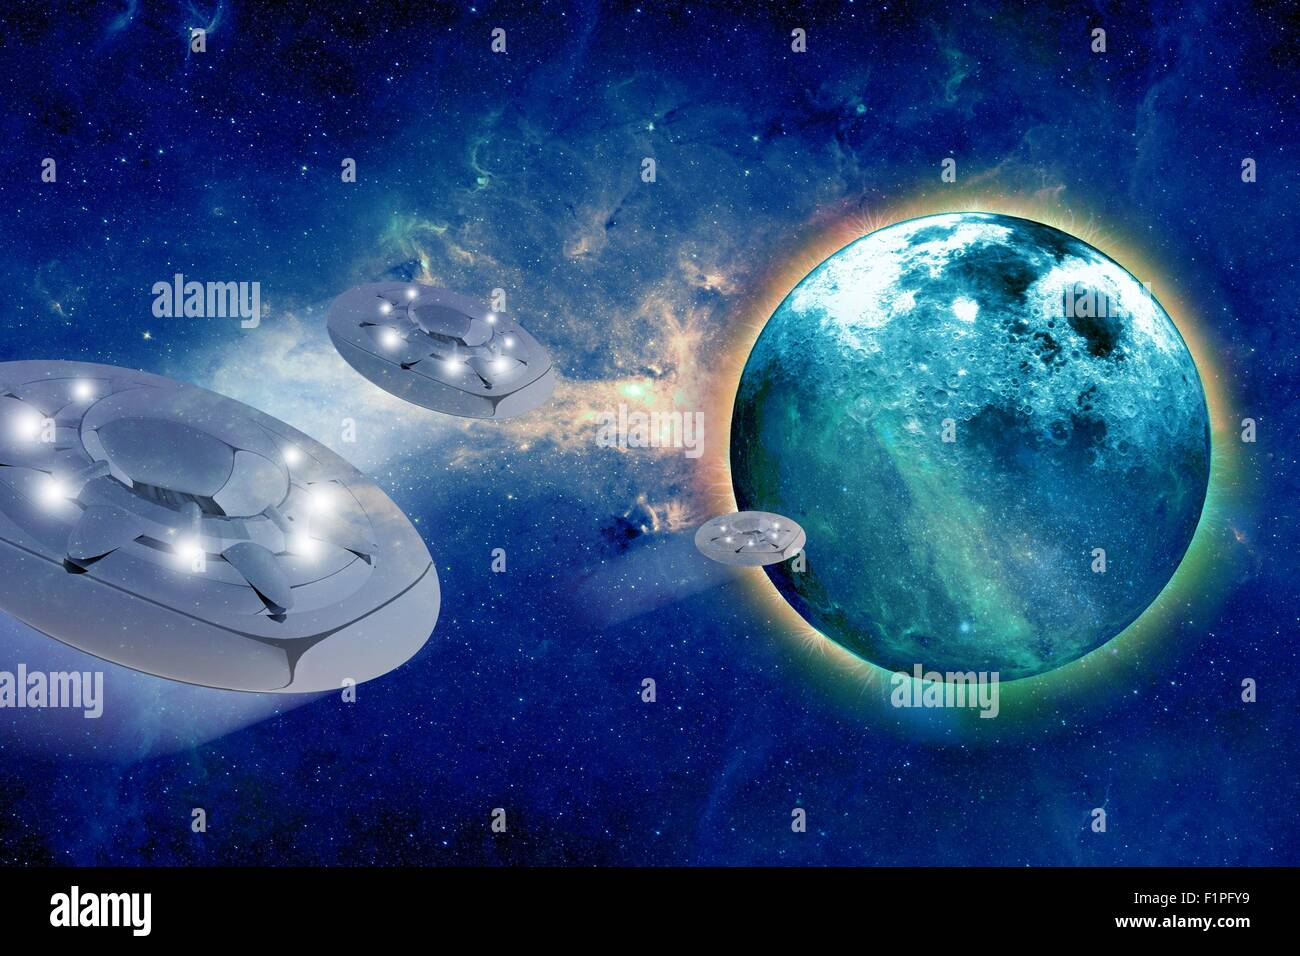 Aliens Spacecrafts and Aliens Home Planet - Abstract Illustrations. - Stock Image